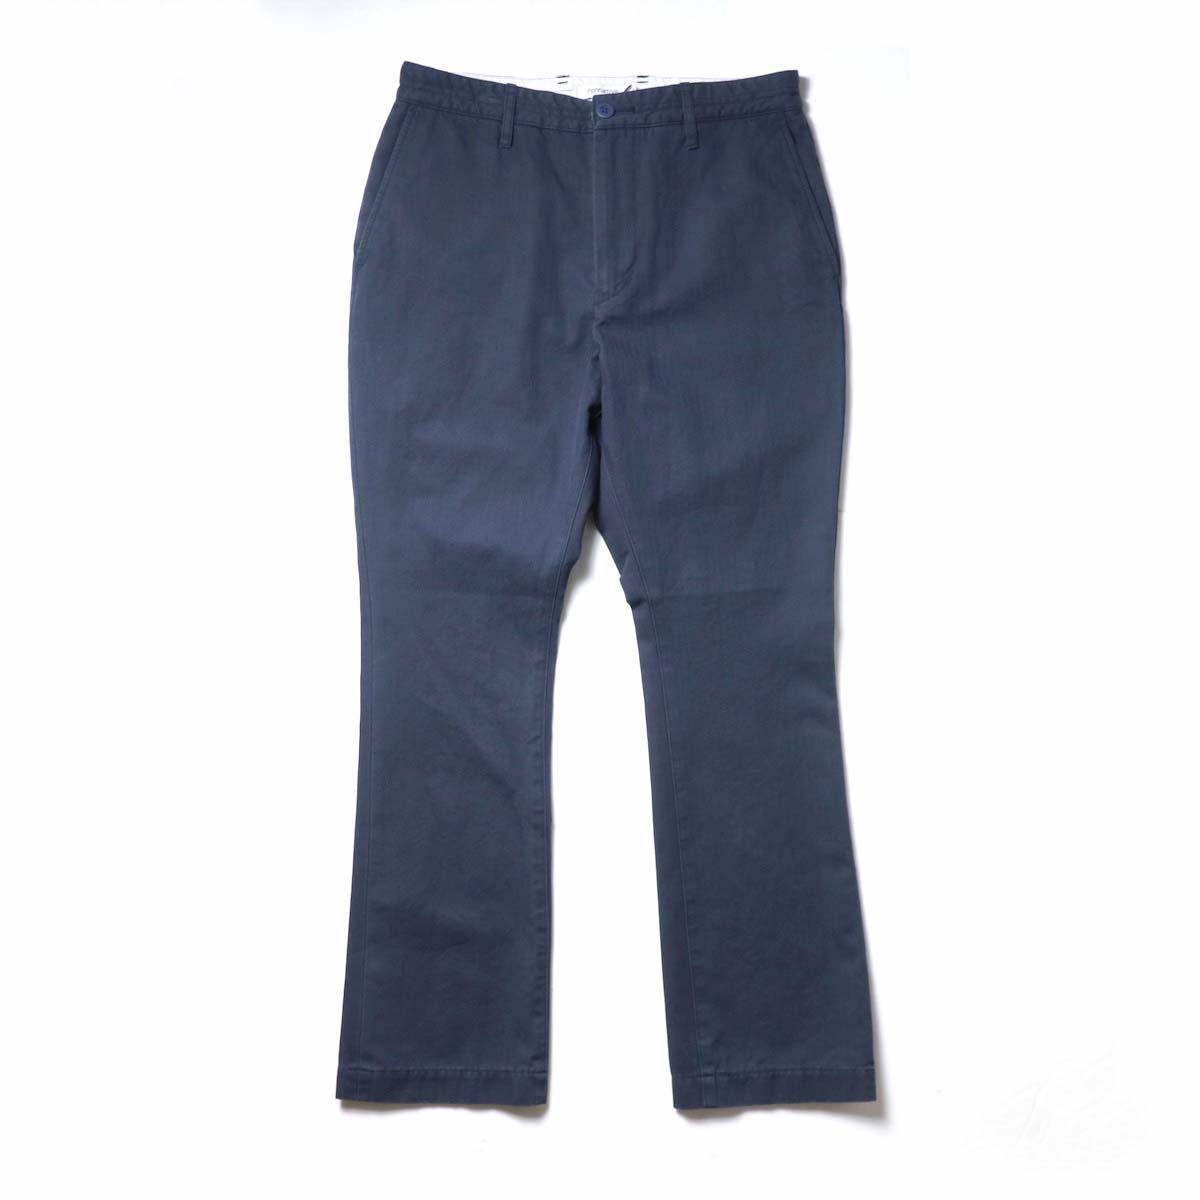 nonnative / DWELLER CHINO TROUSERS FLARED FIT COTTON HERRINGBONE TWILL VW (Navy)